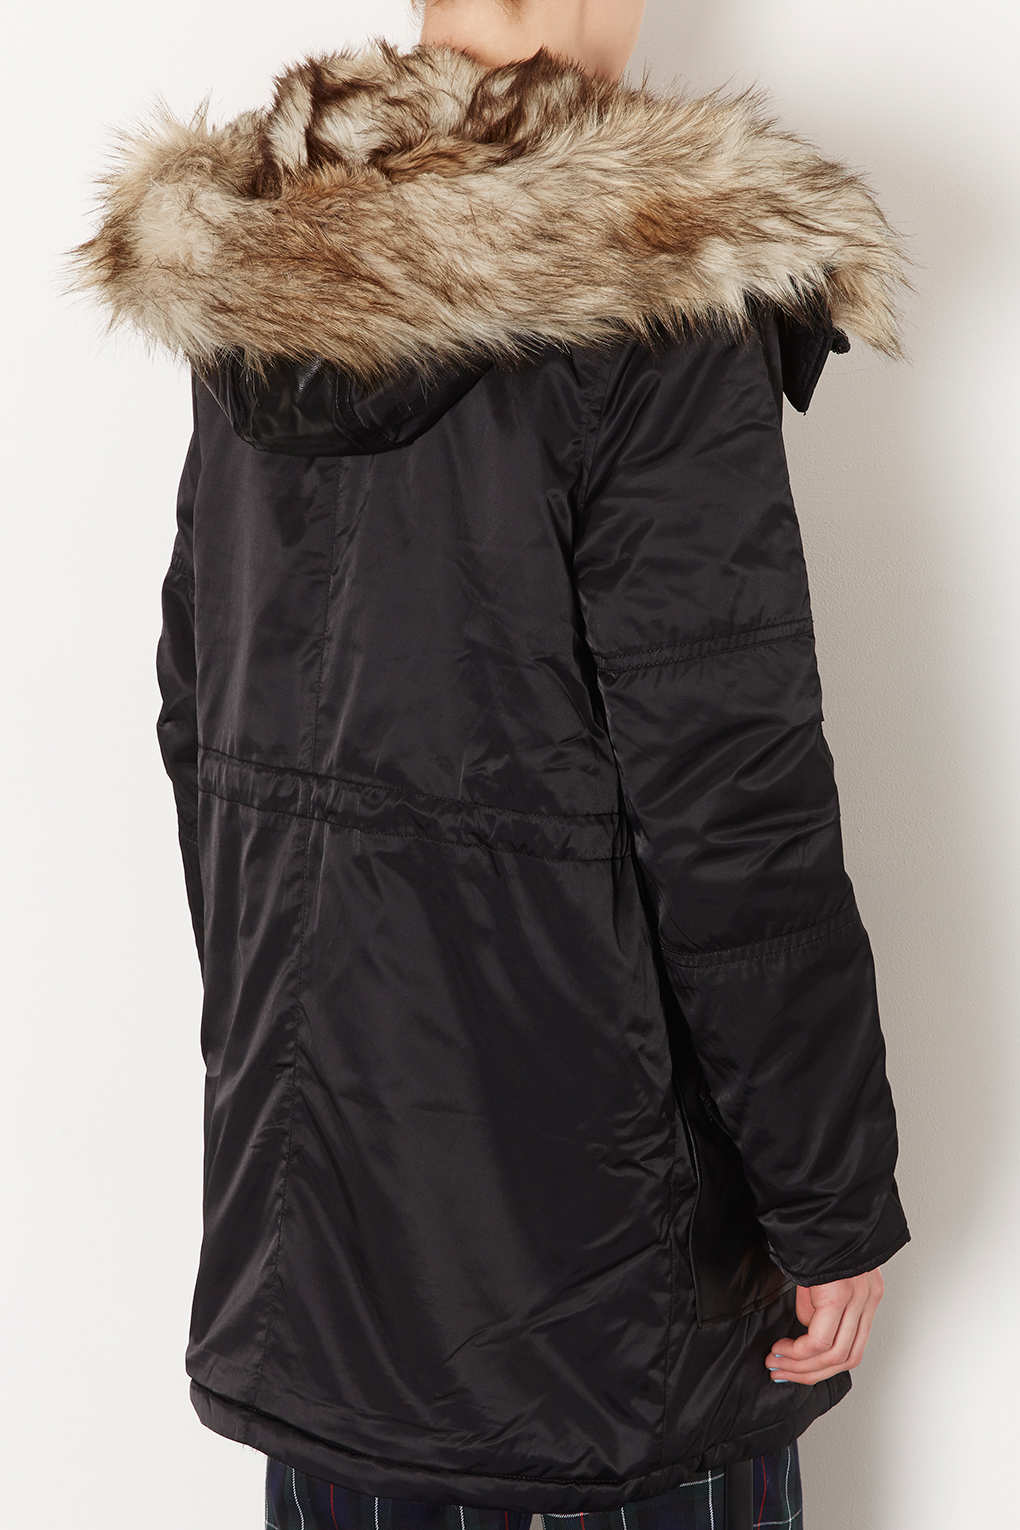 Topshop Fur Lined Long Parka Jacket In Black Lyst